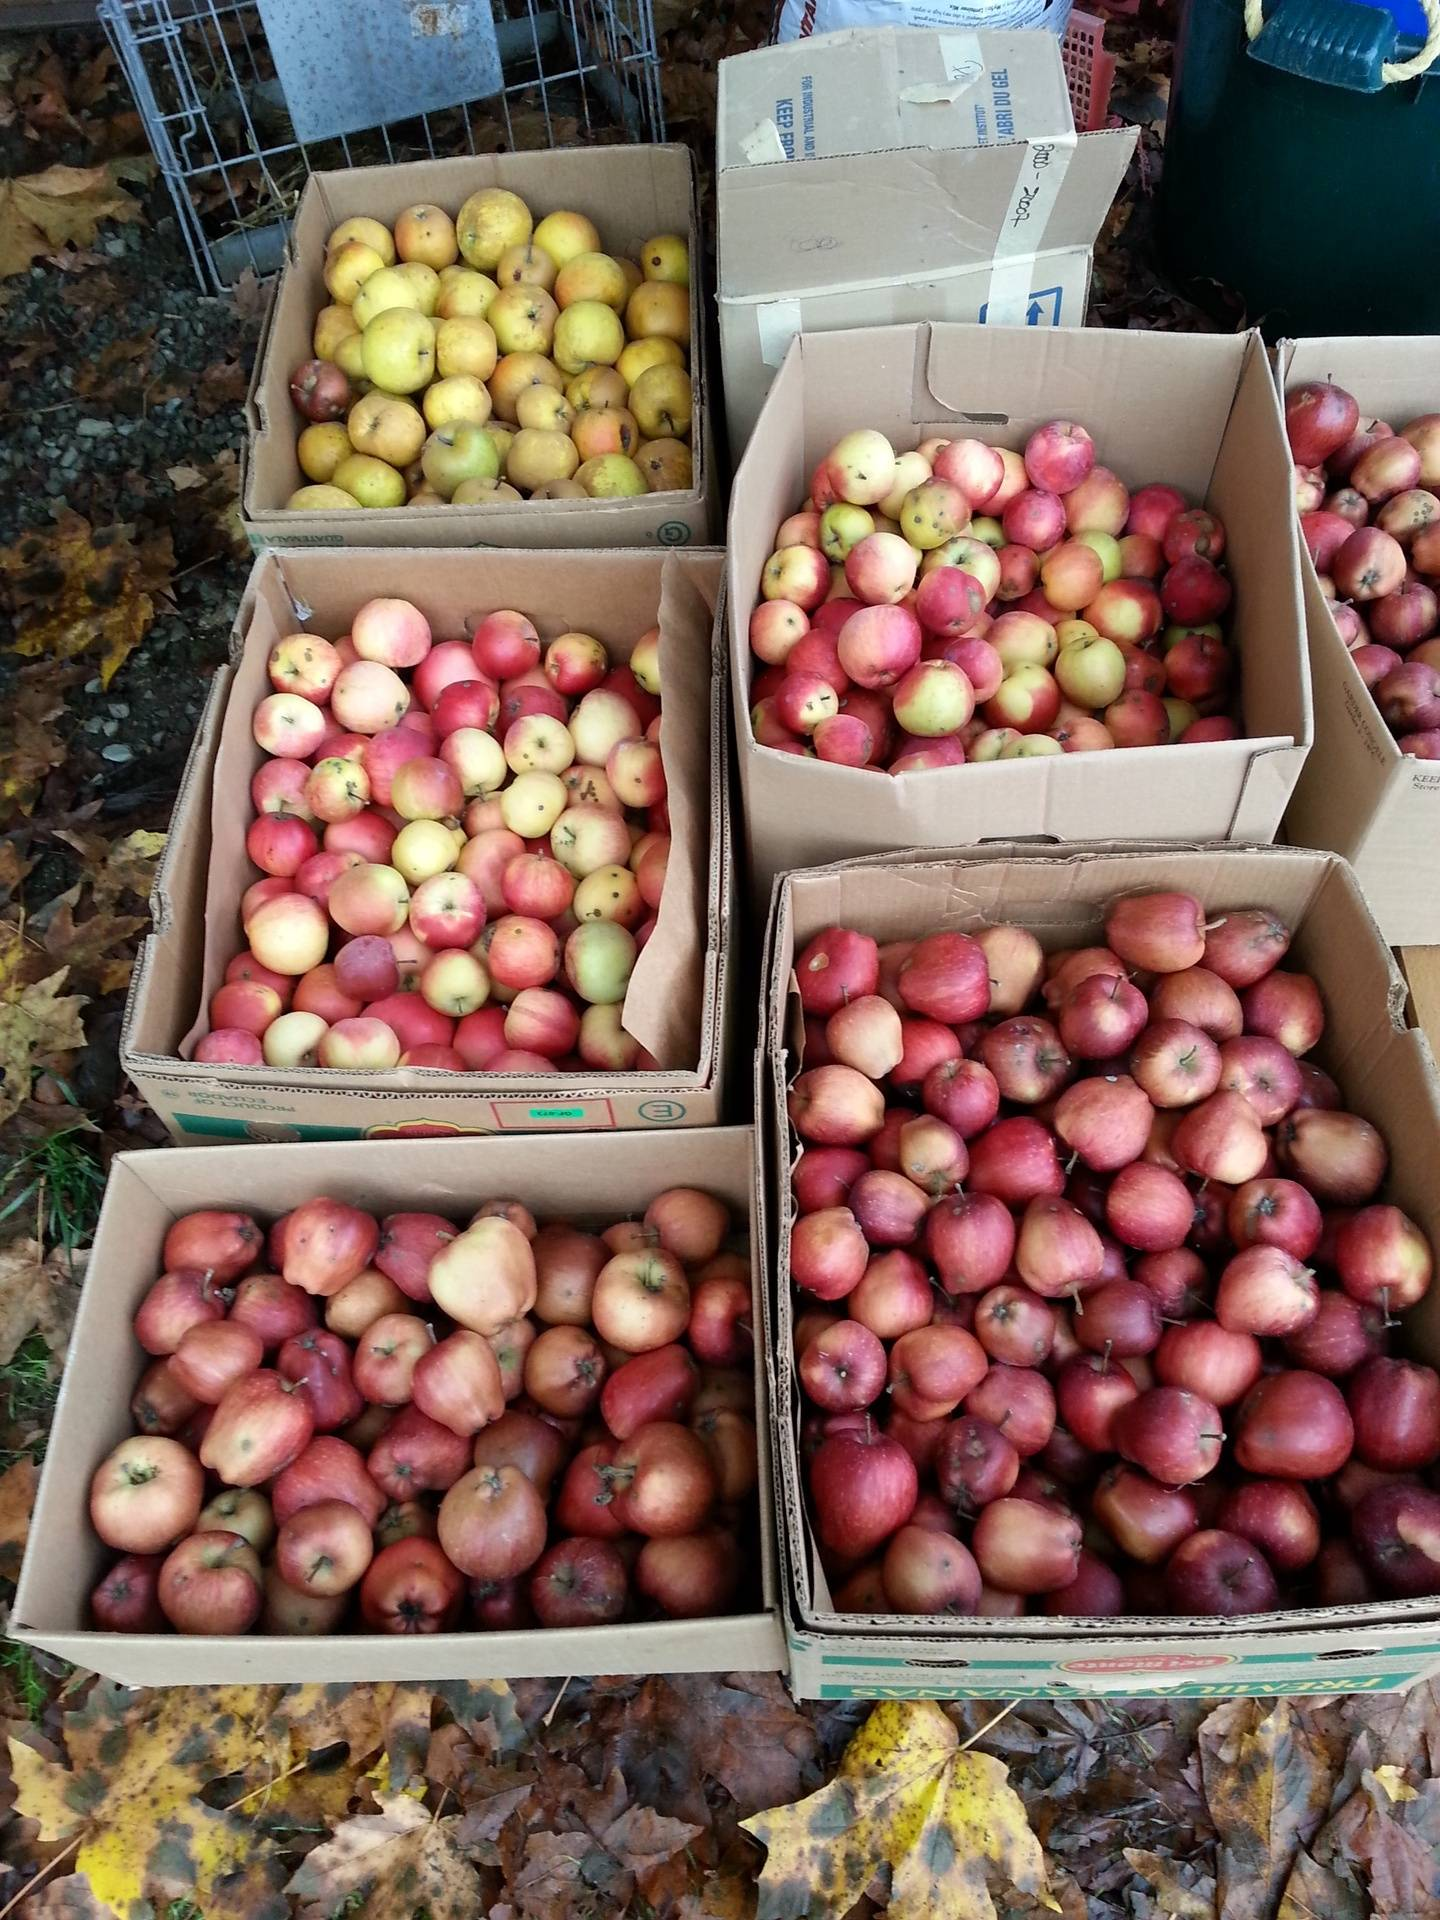 All kinds of delicious apples